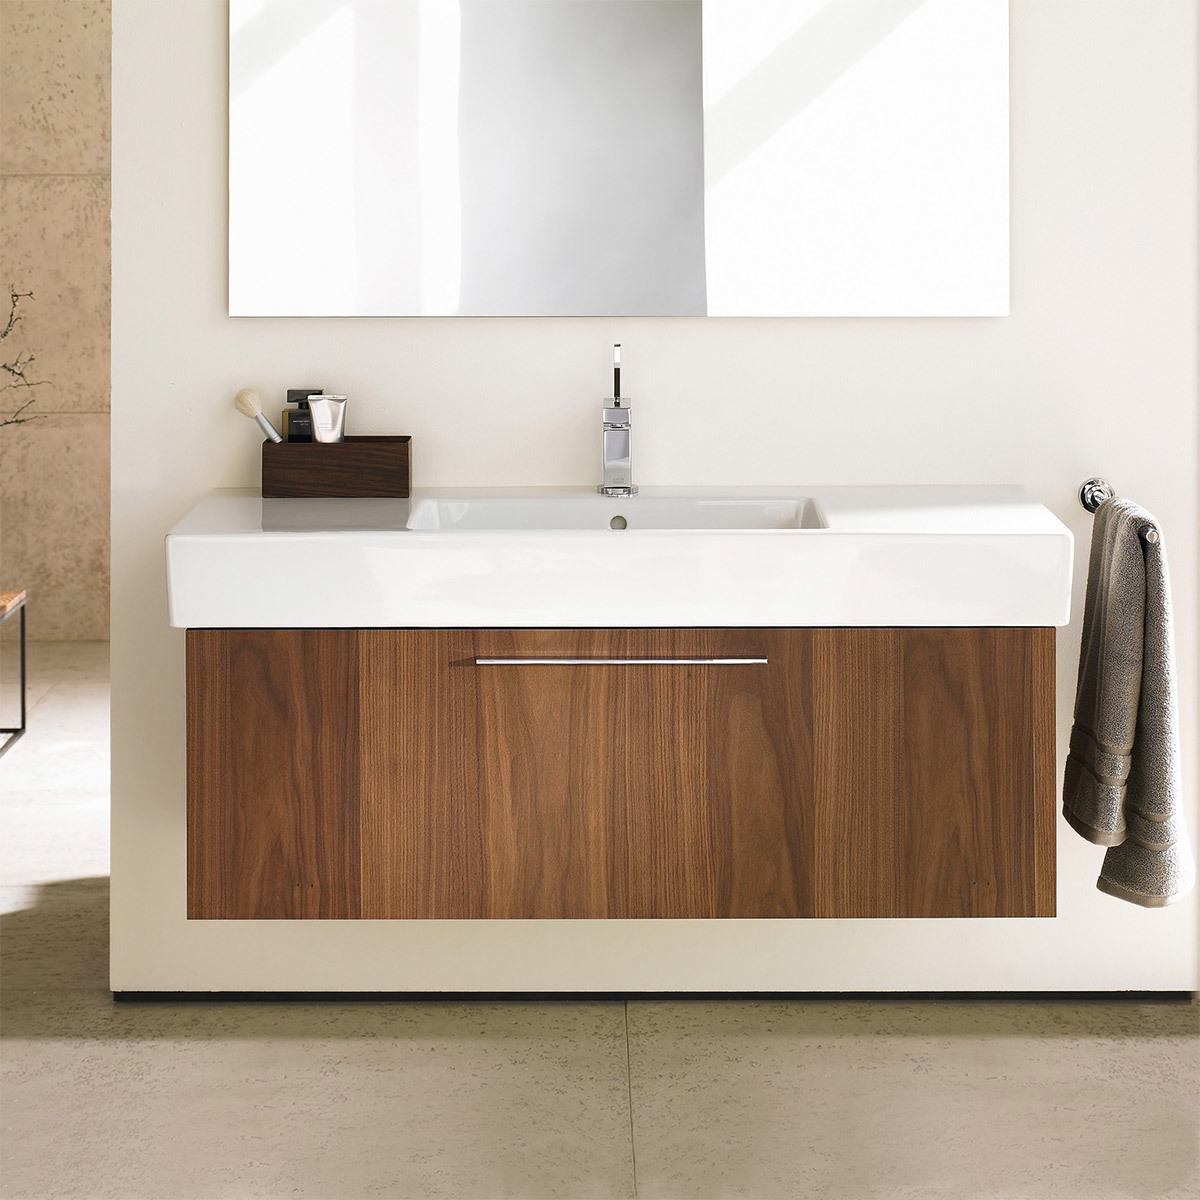 Floating vanity with walnut cabinets and white countertop photo